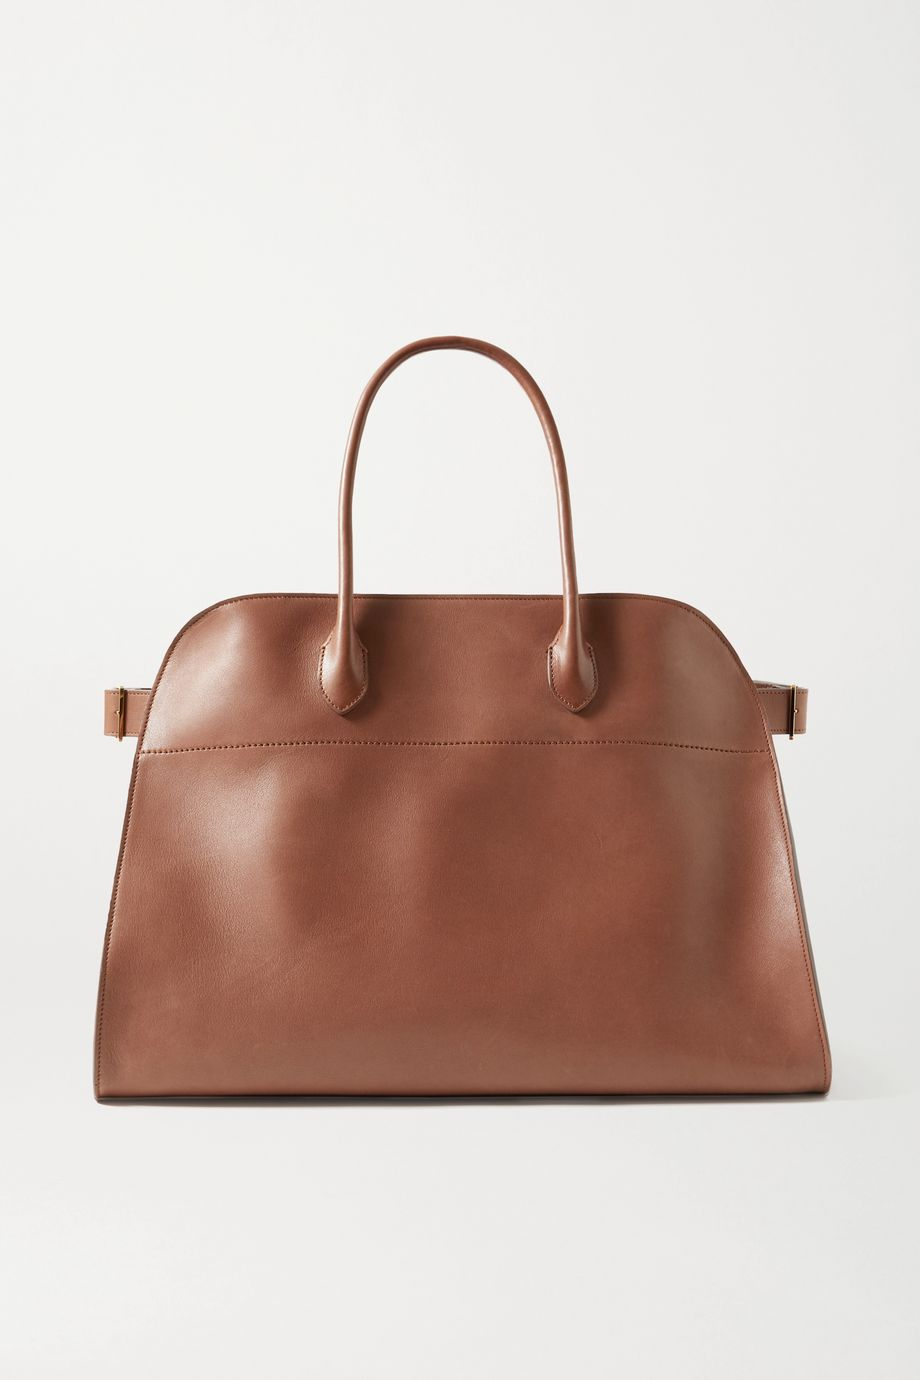 The Row Margaux 17 Air large buckled leather tote